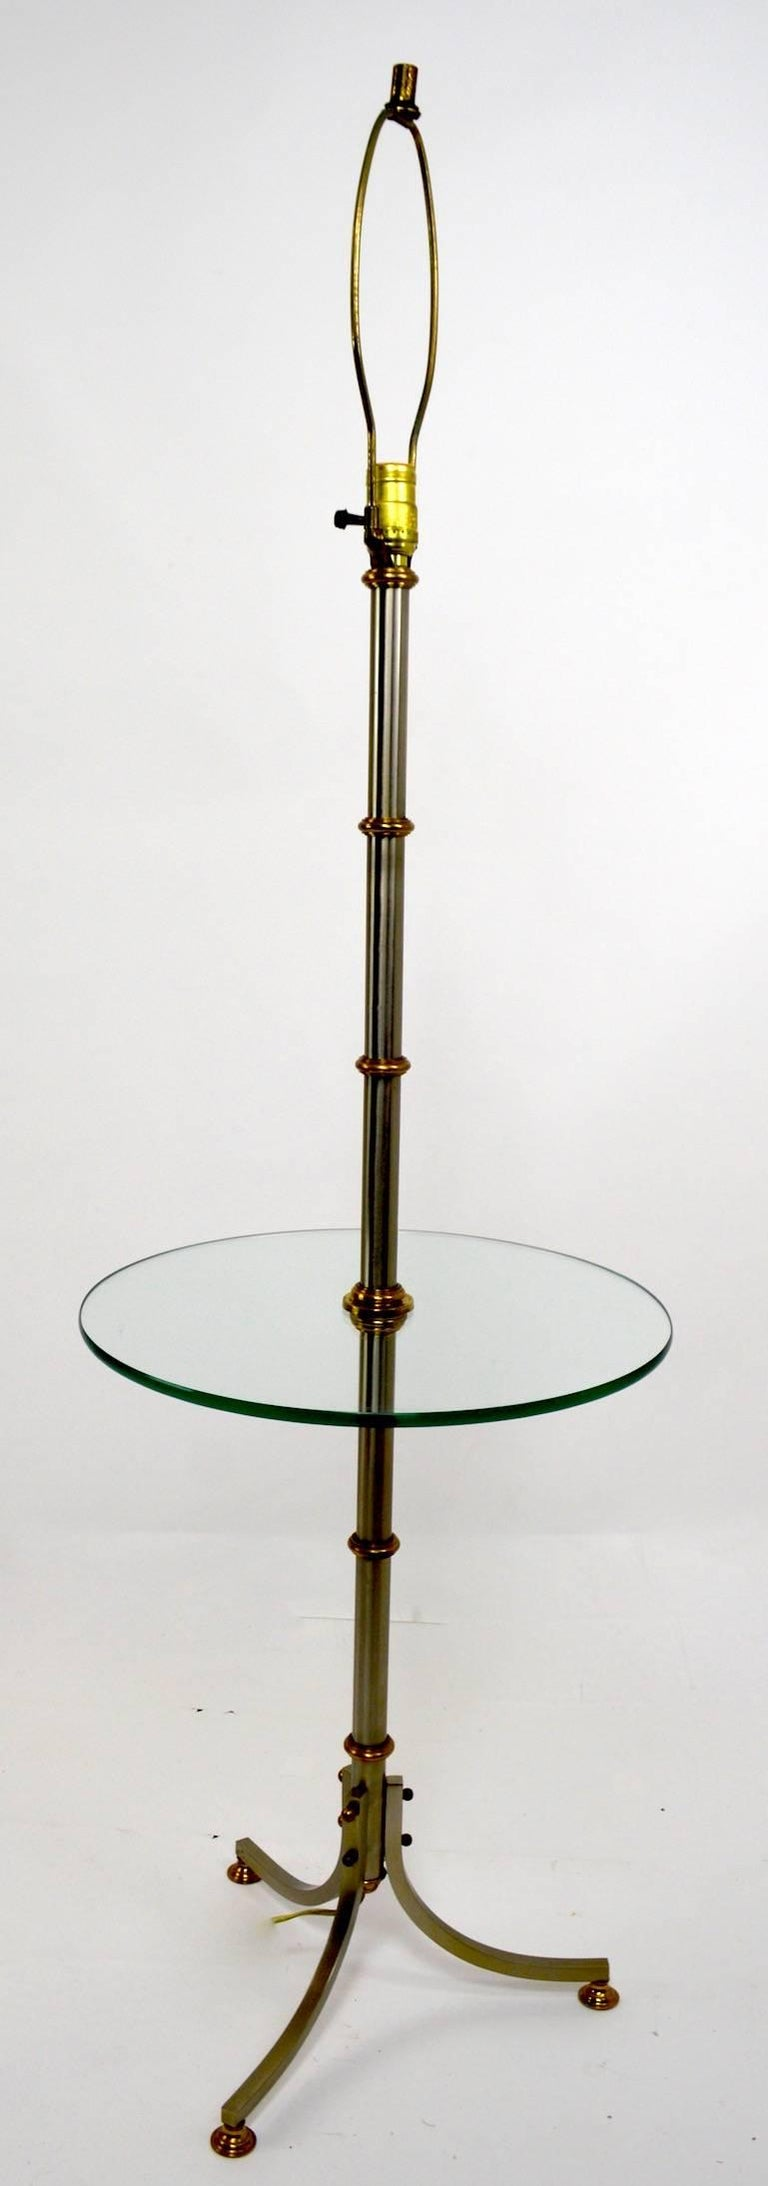 Floor lamp with glass shelf after Maison Jansen. Measures: Shelf height 21.5 inches, shelf diameter 16 inches.